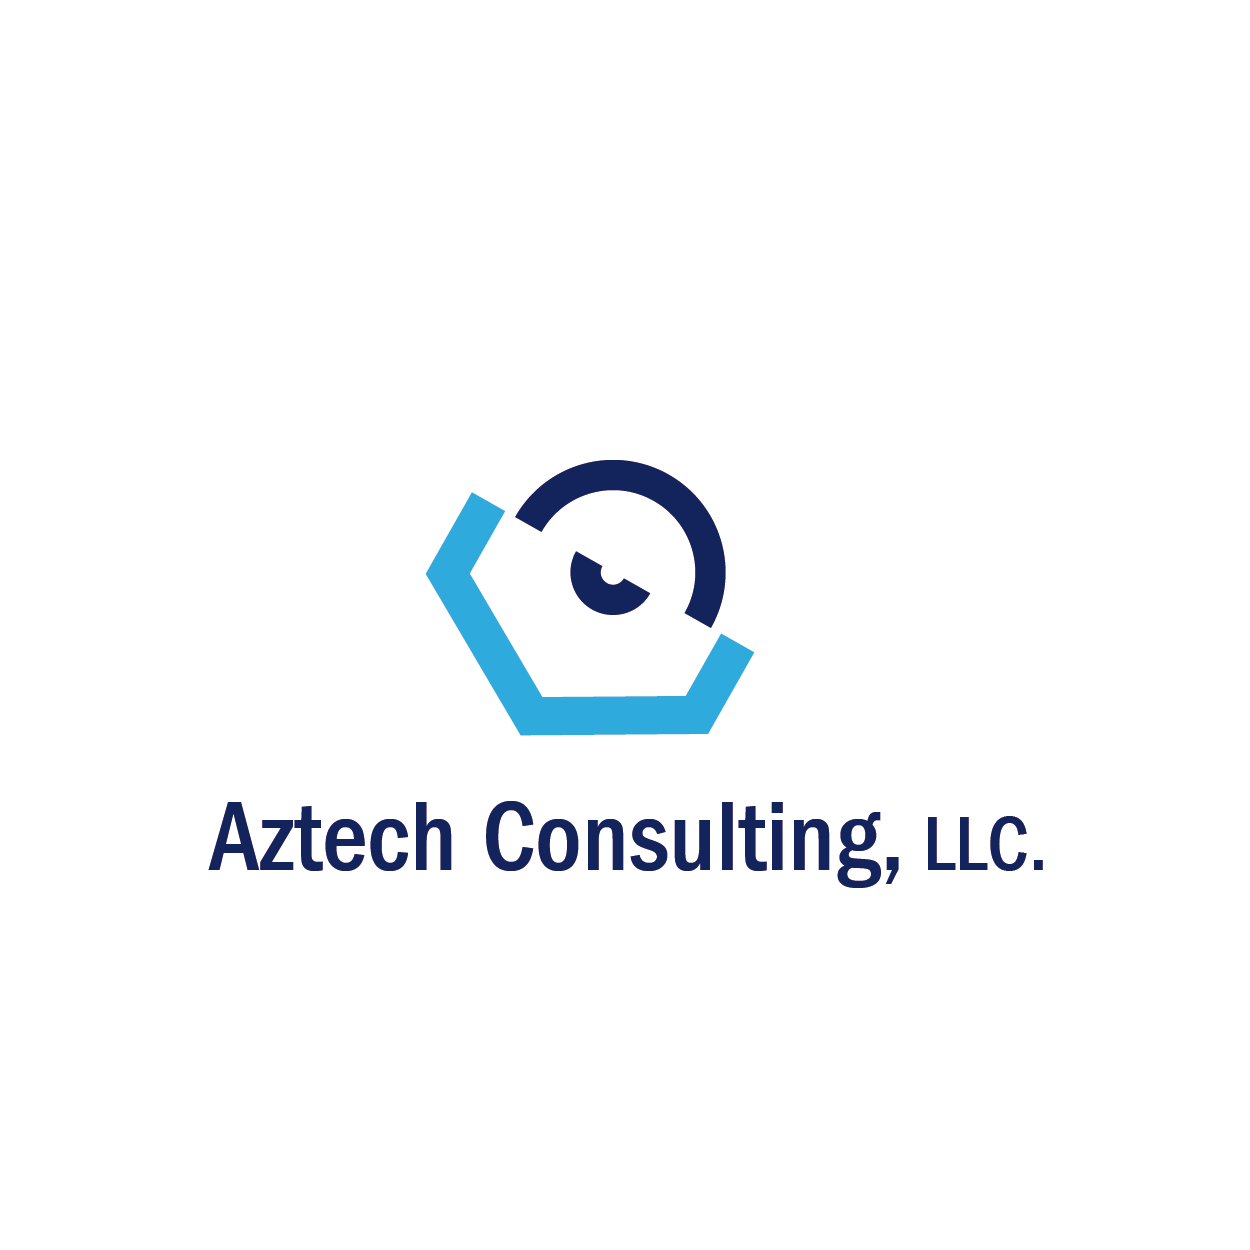 Consulting logo design for aztech consulting llc by for Consulting logo design